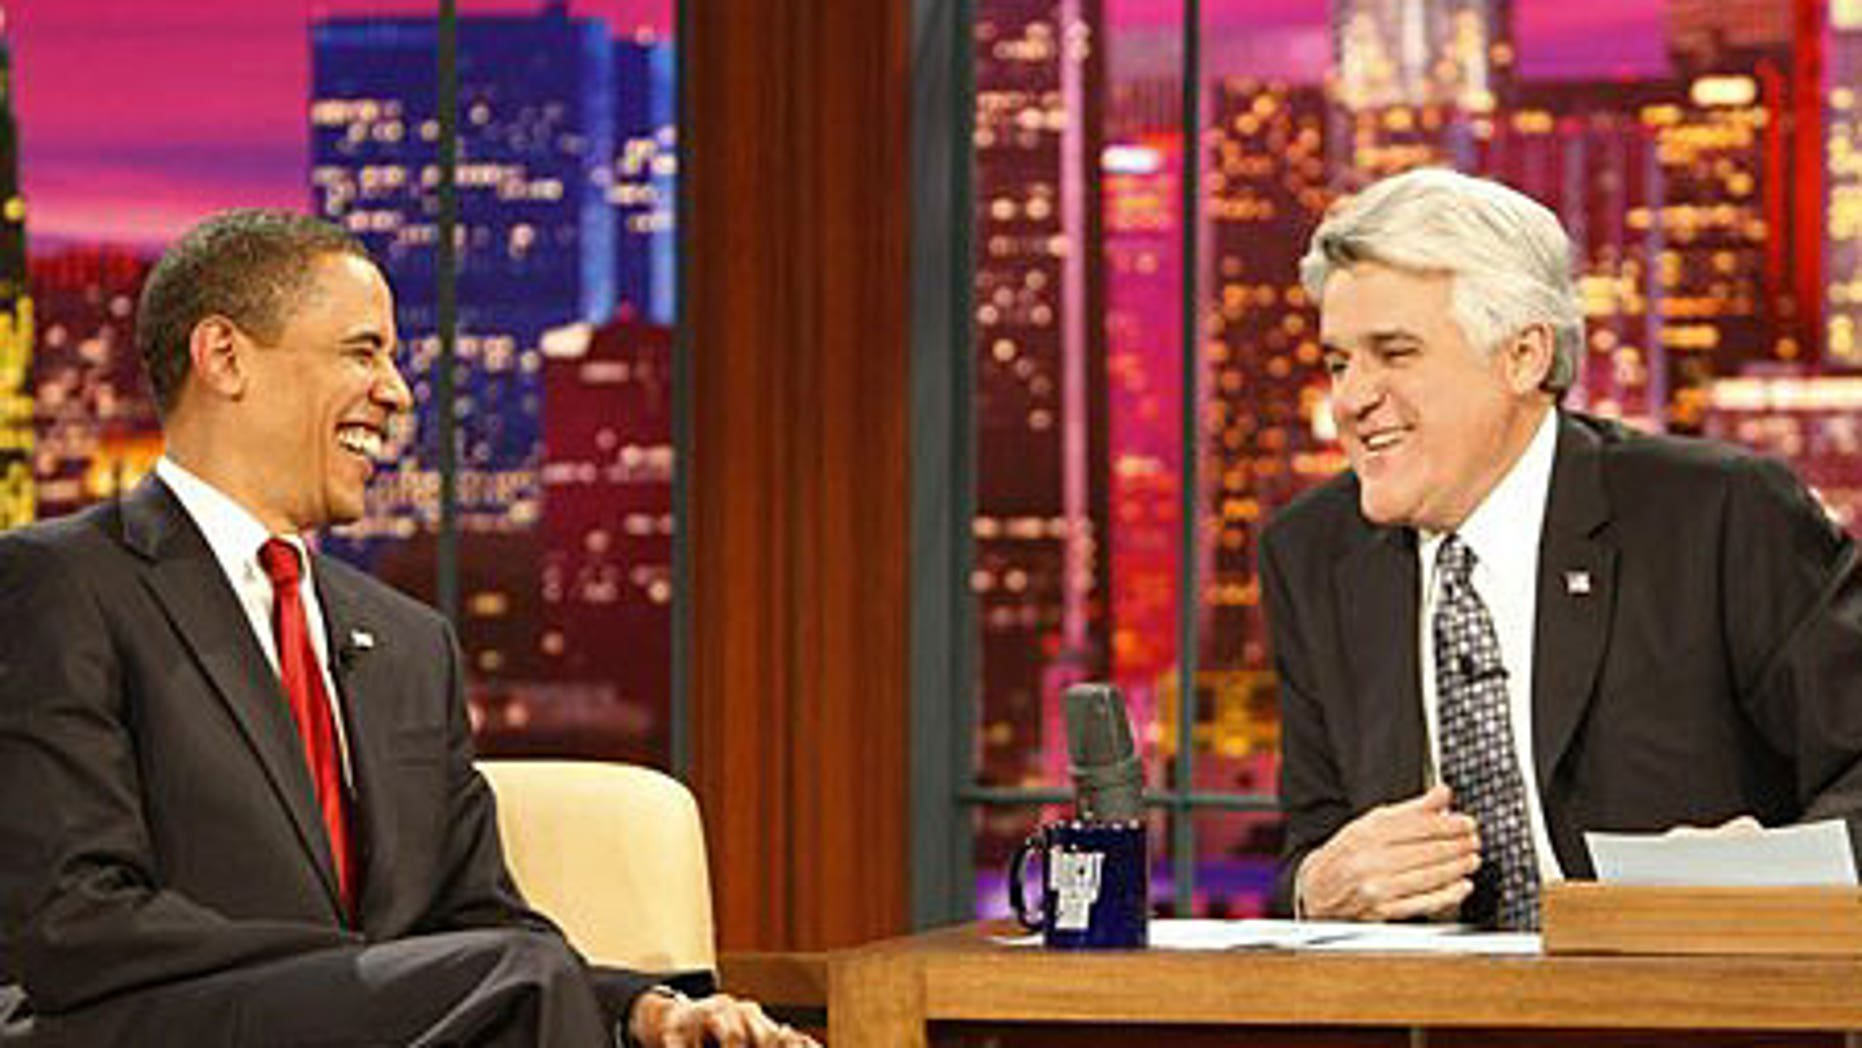 President Obama shares a laugh with Jay Leno on 'The Tonight Show'